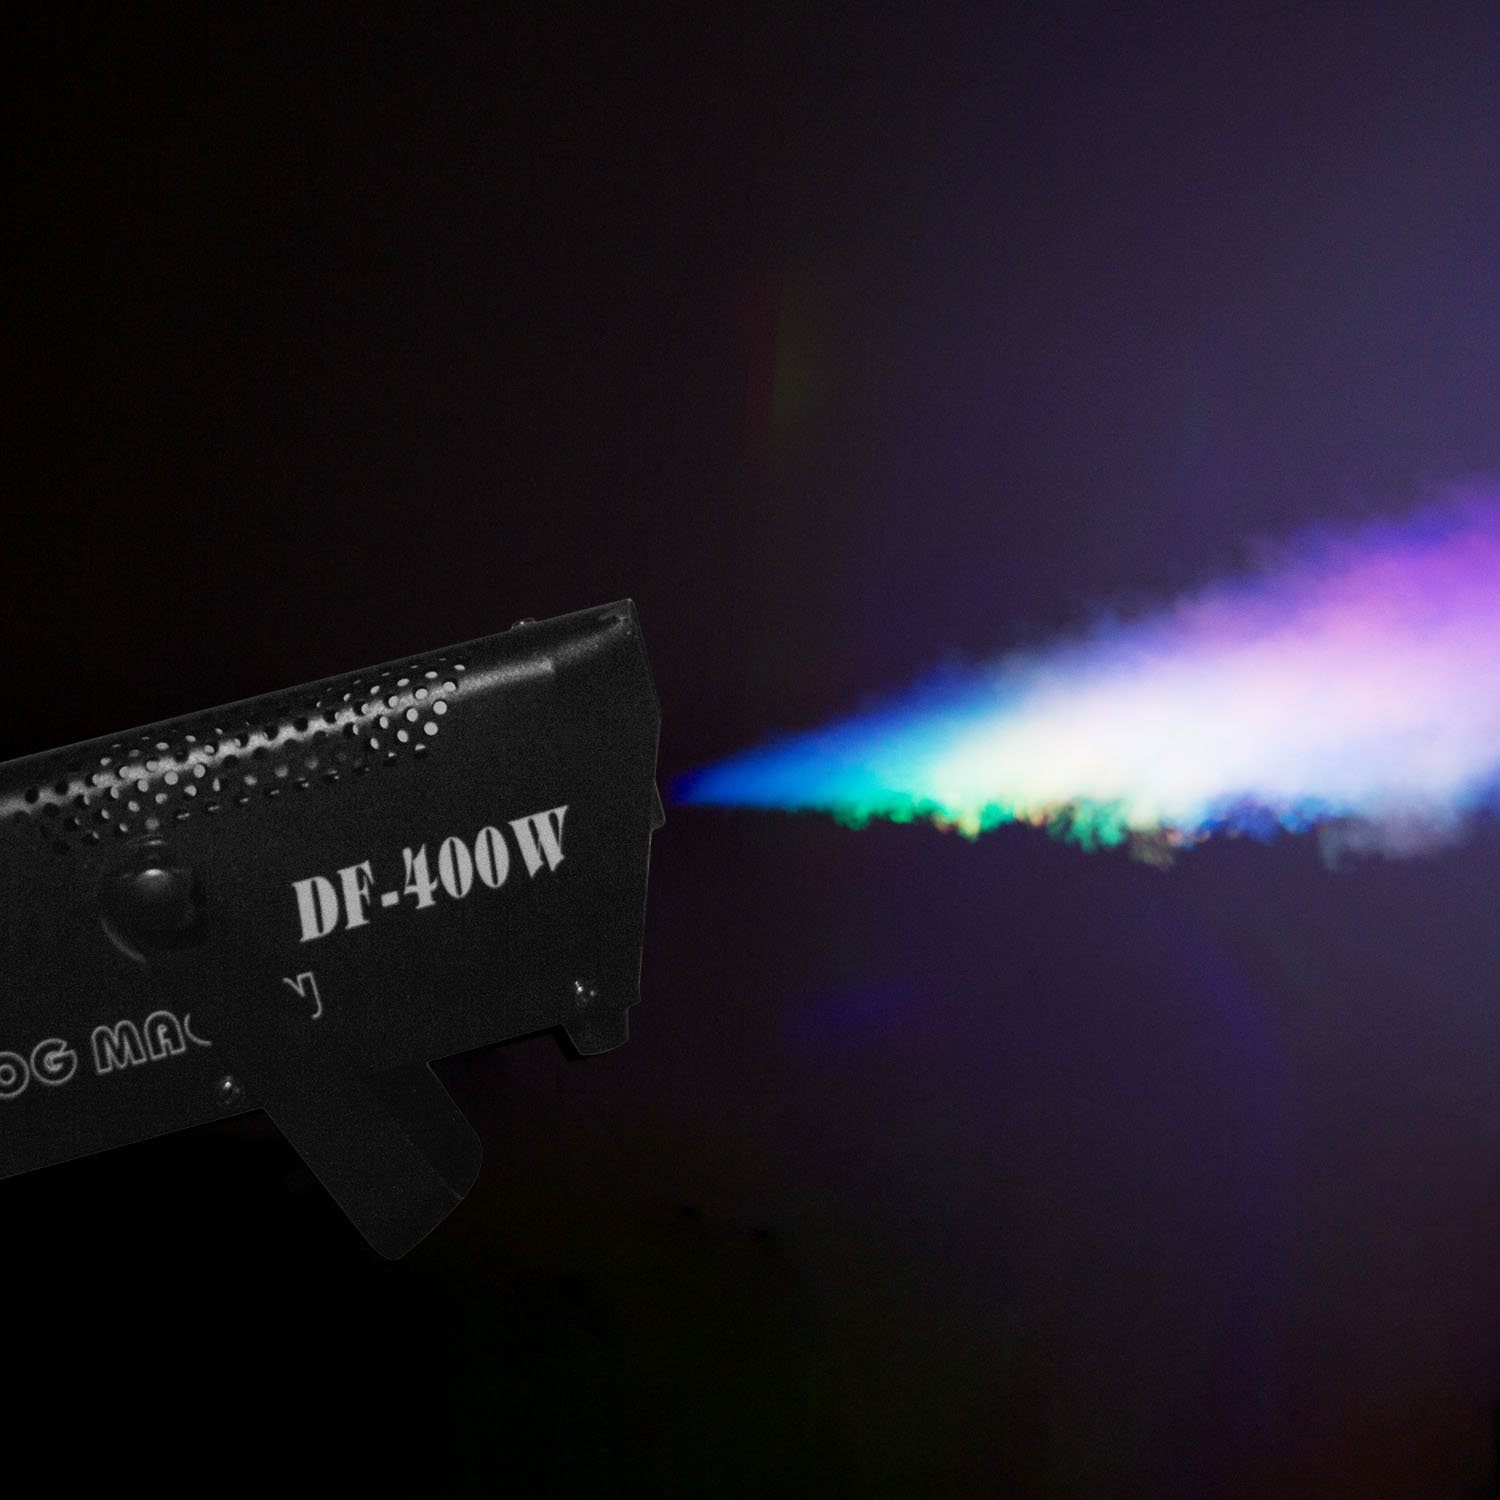 Fog Machine, Miric Smoke Machine Portable with LED Lights Equipped with Wired and Wireless Remote Control for Party, Christmas, Halloween and Weddings (400W) by Miric (Image #2)